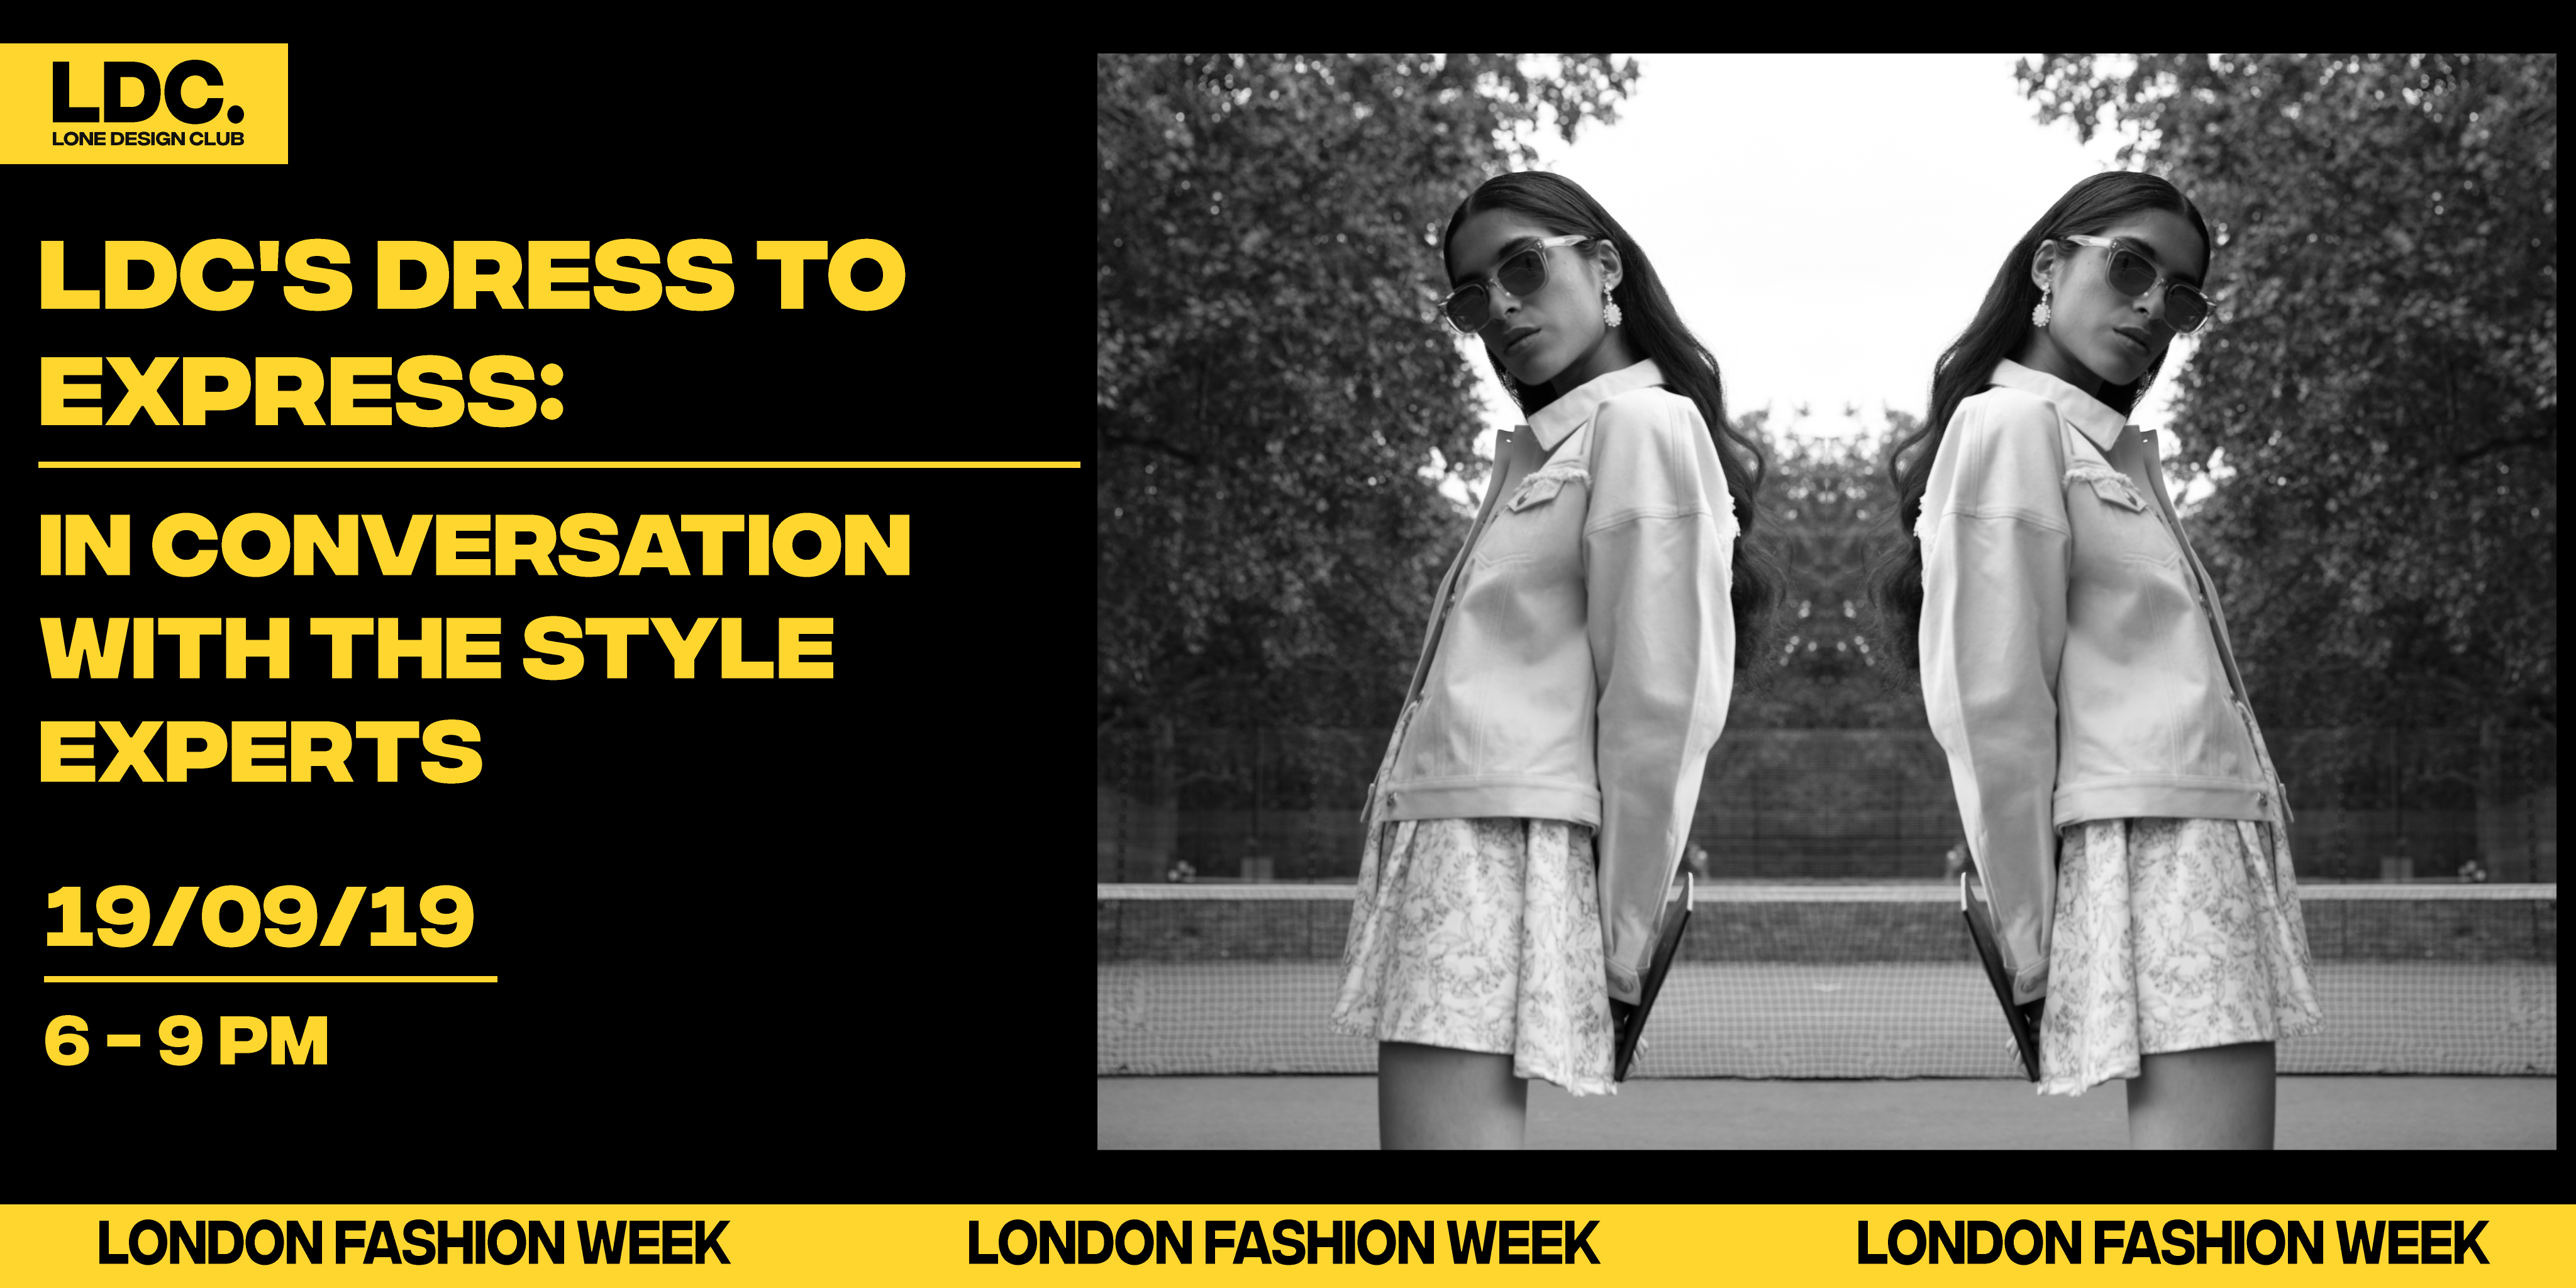 LDC's Dress to Express: In Conversation with the Style Experts